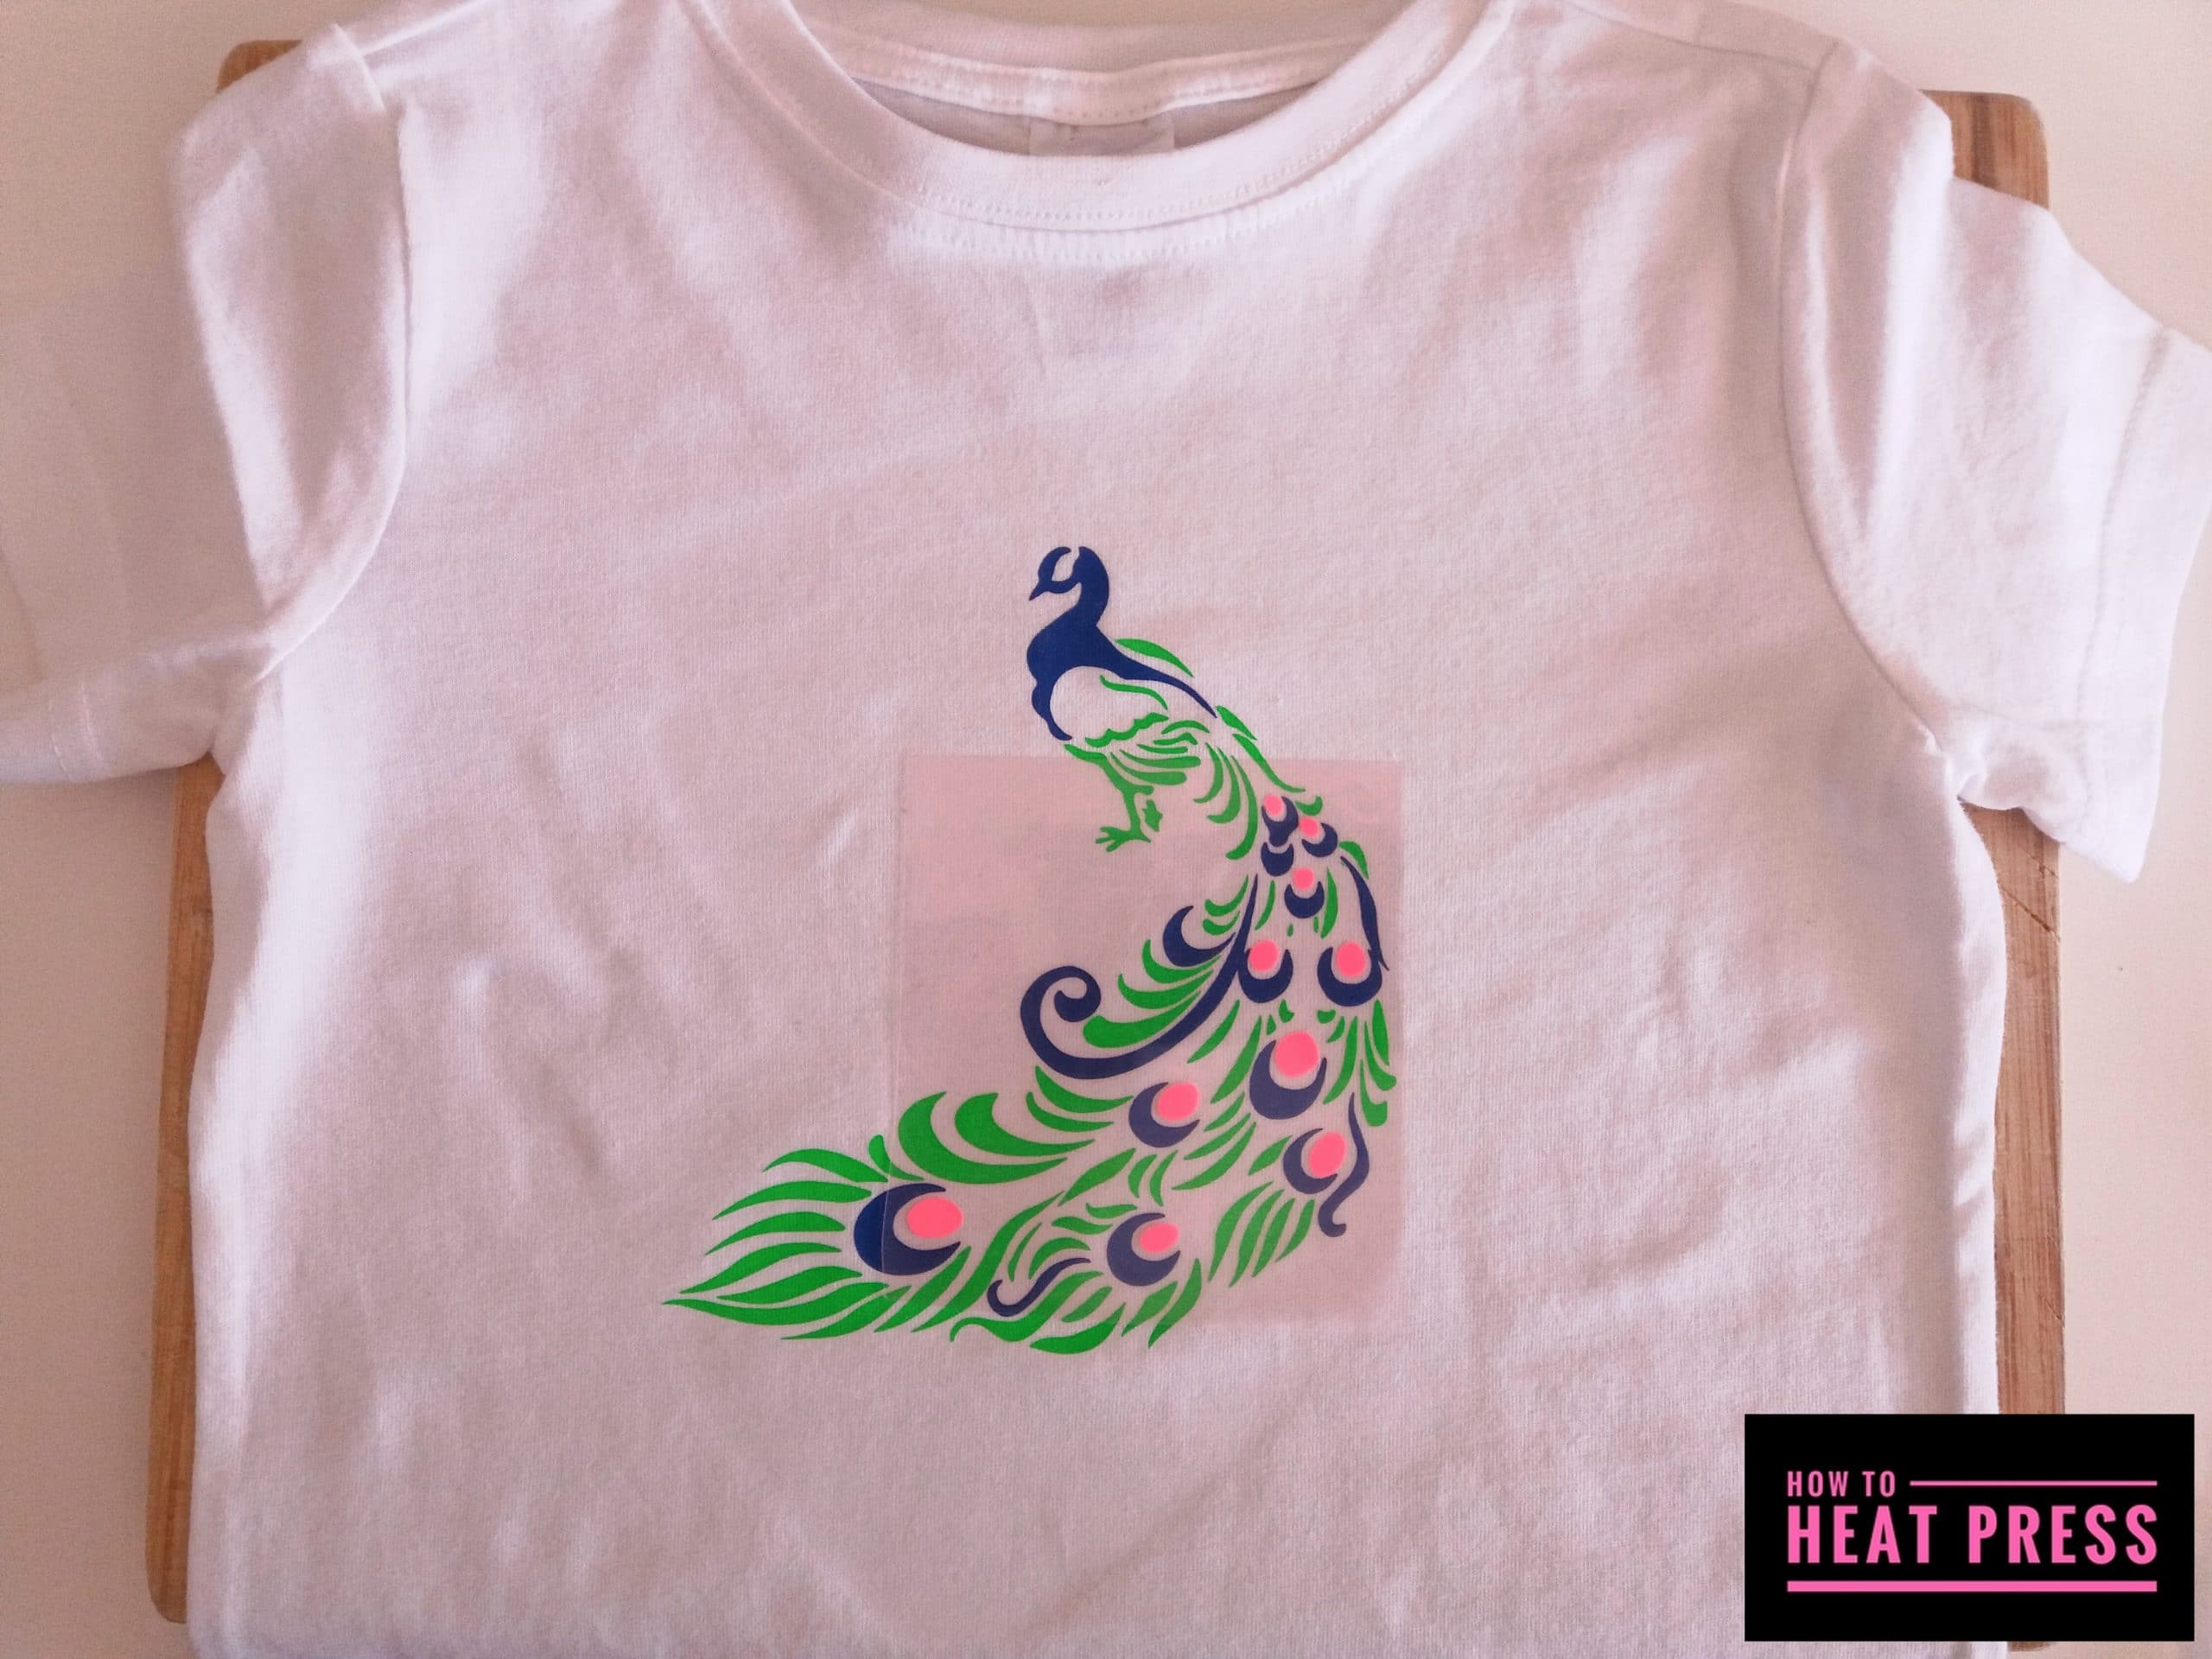 How To Make A Multicolored Htv Tee In Cricut Design Space